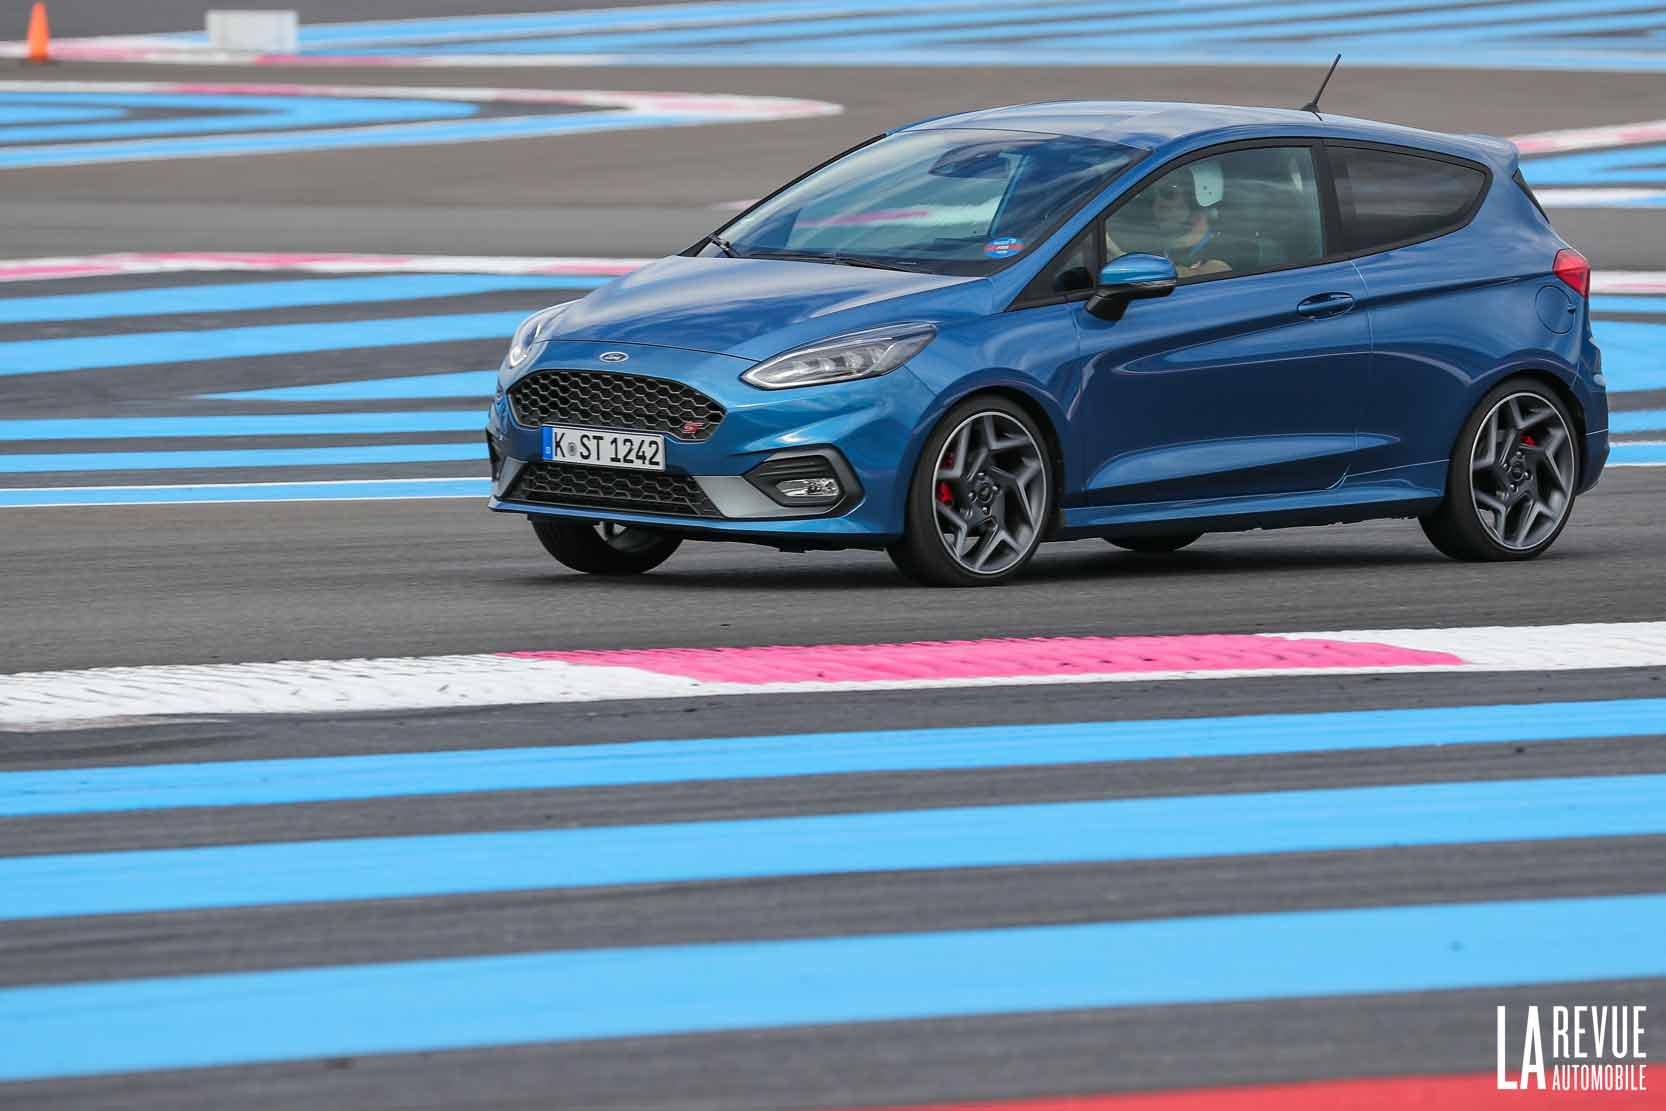 Exterieur_Ford-Fiesta-ST-1.5-Turbo_7